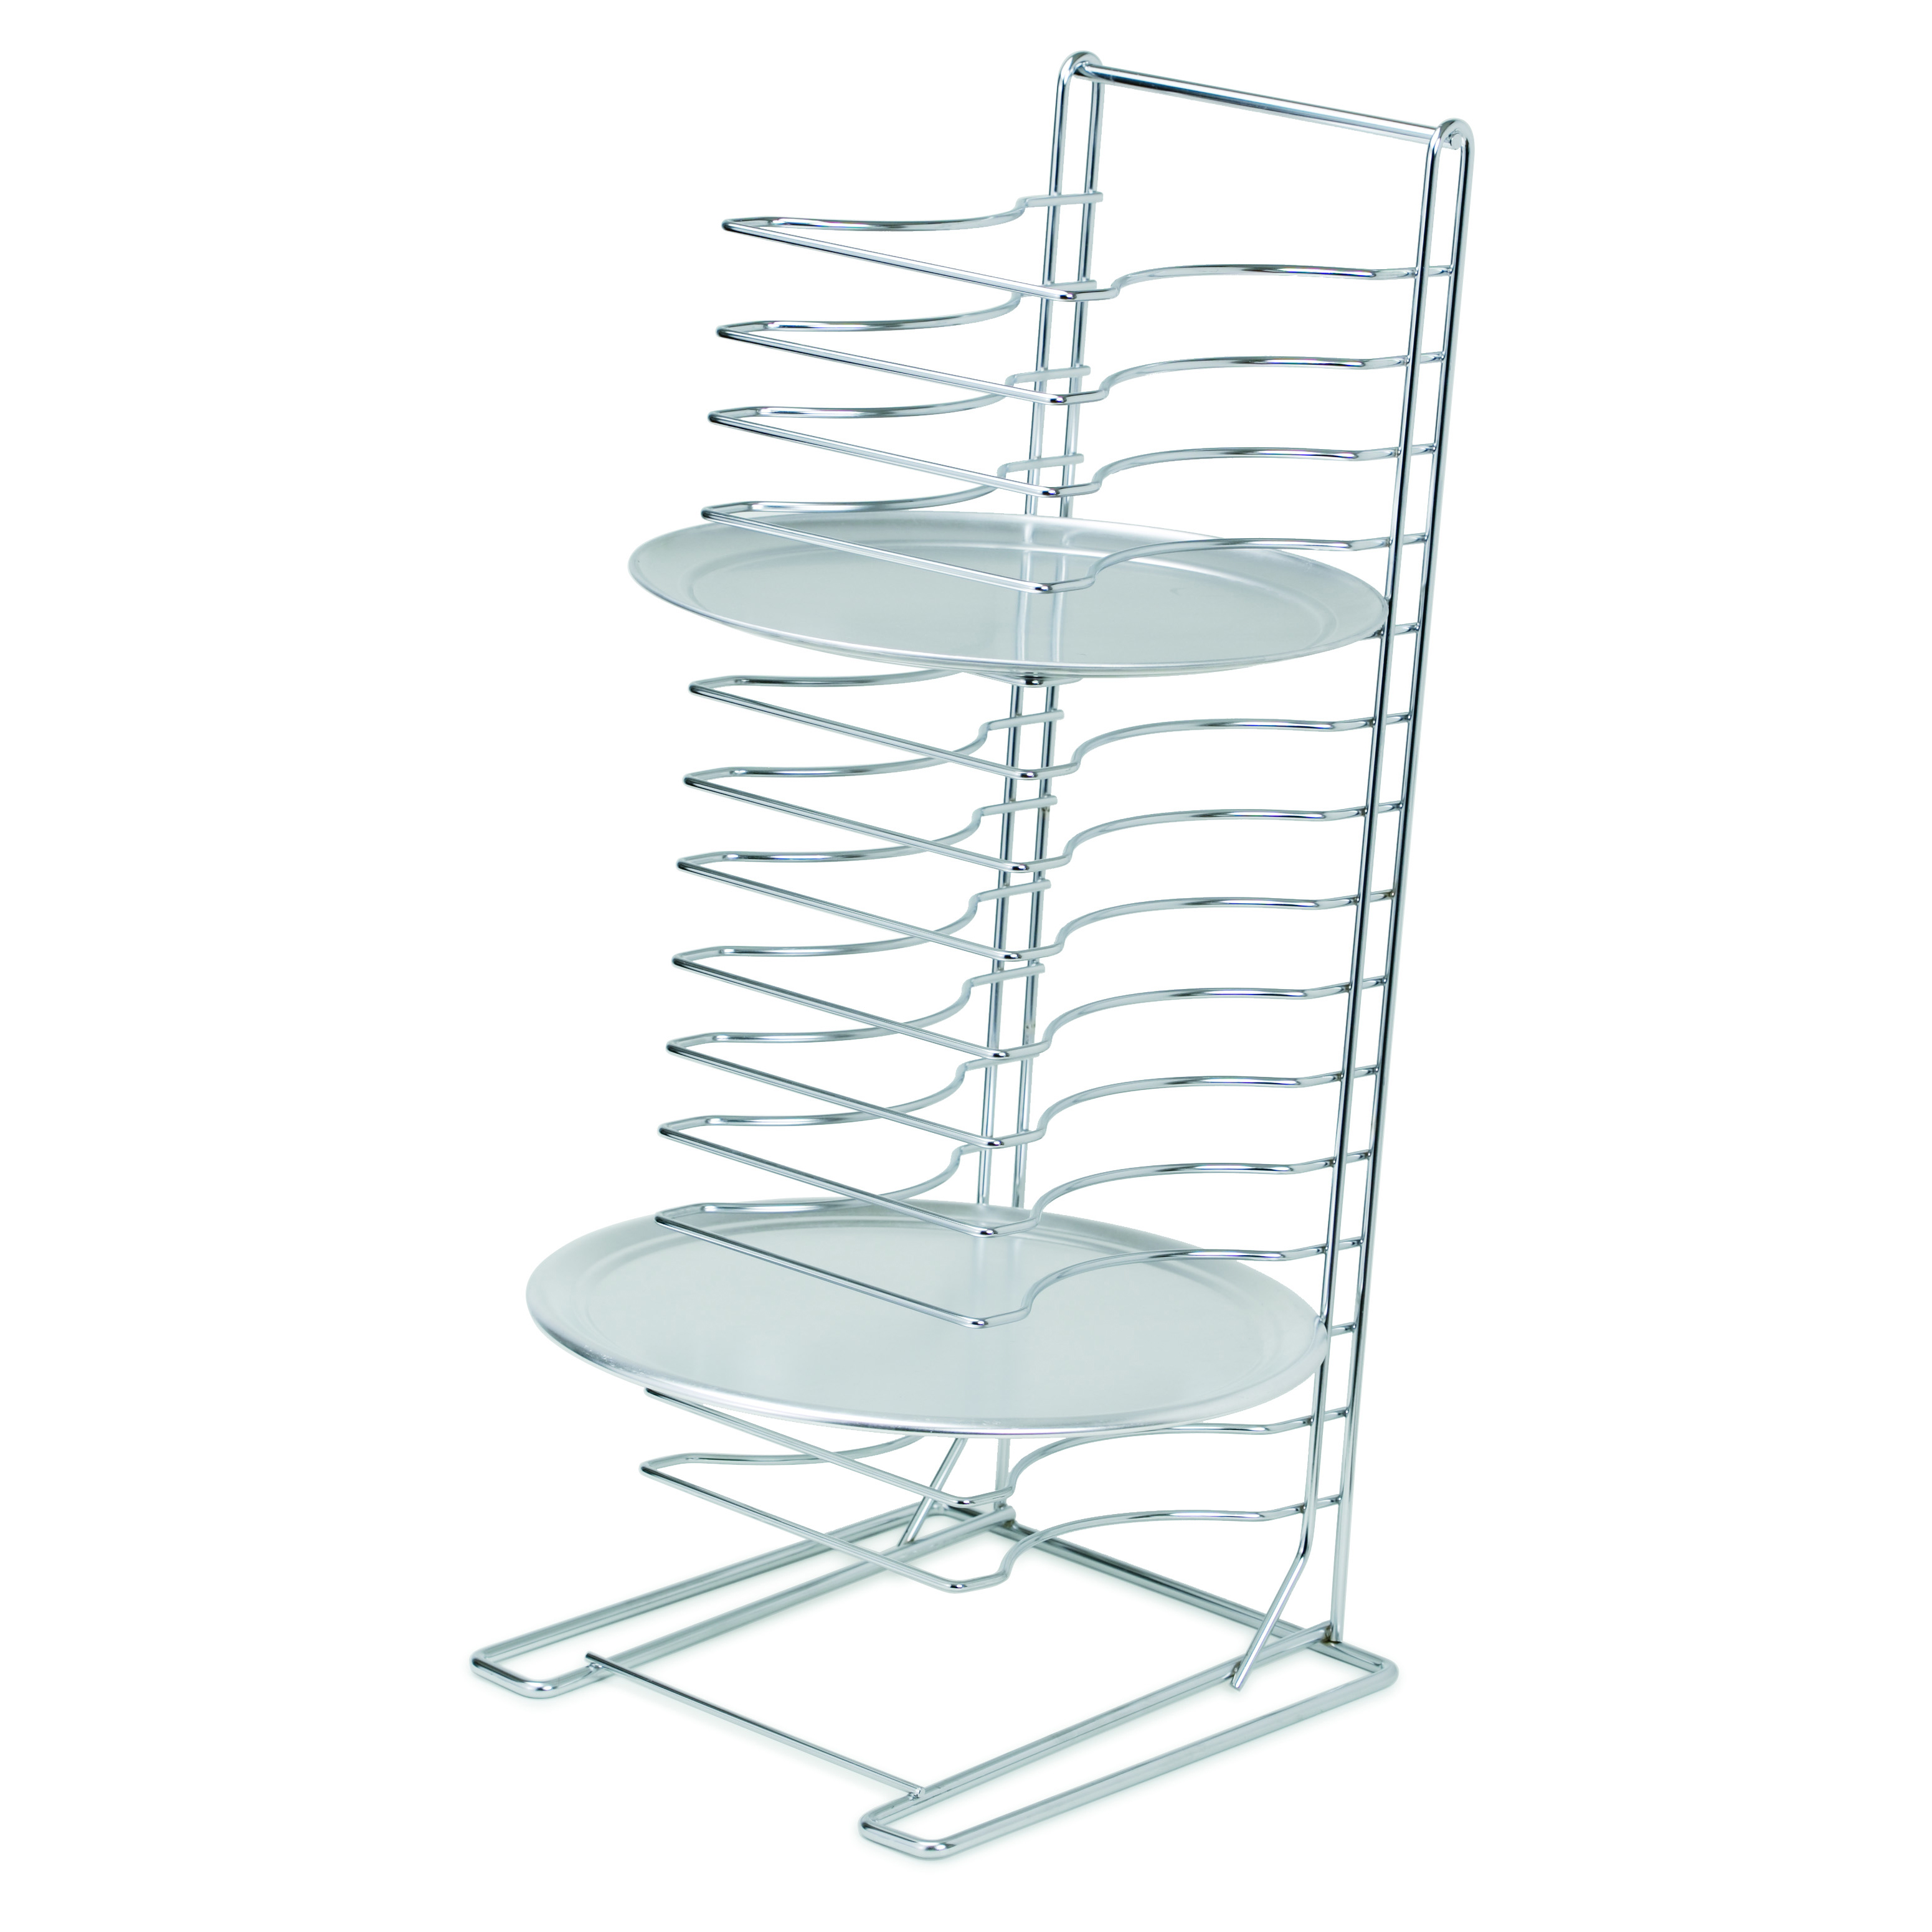 Royal Industries ROY PTS 15 HD pan rack, pizza